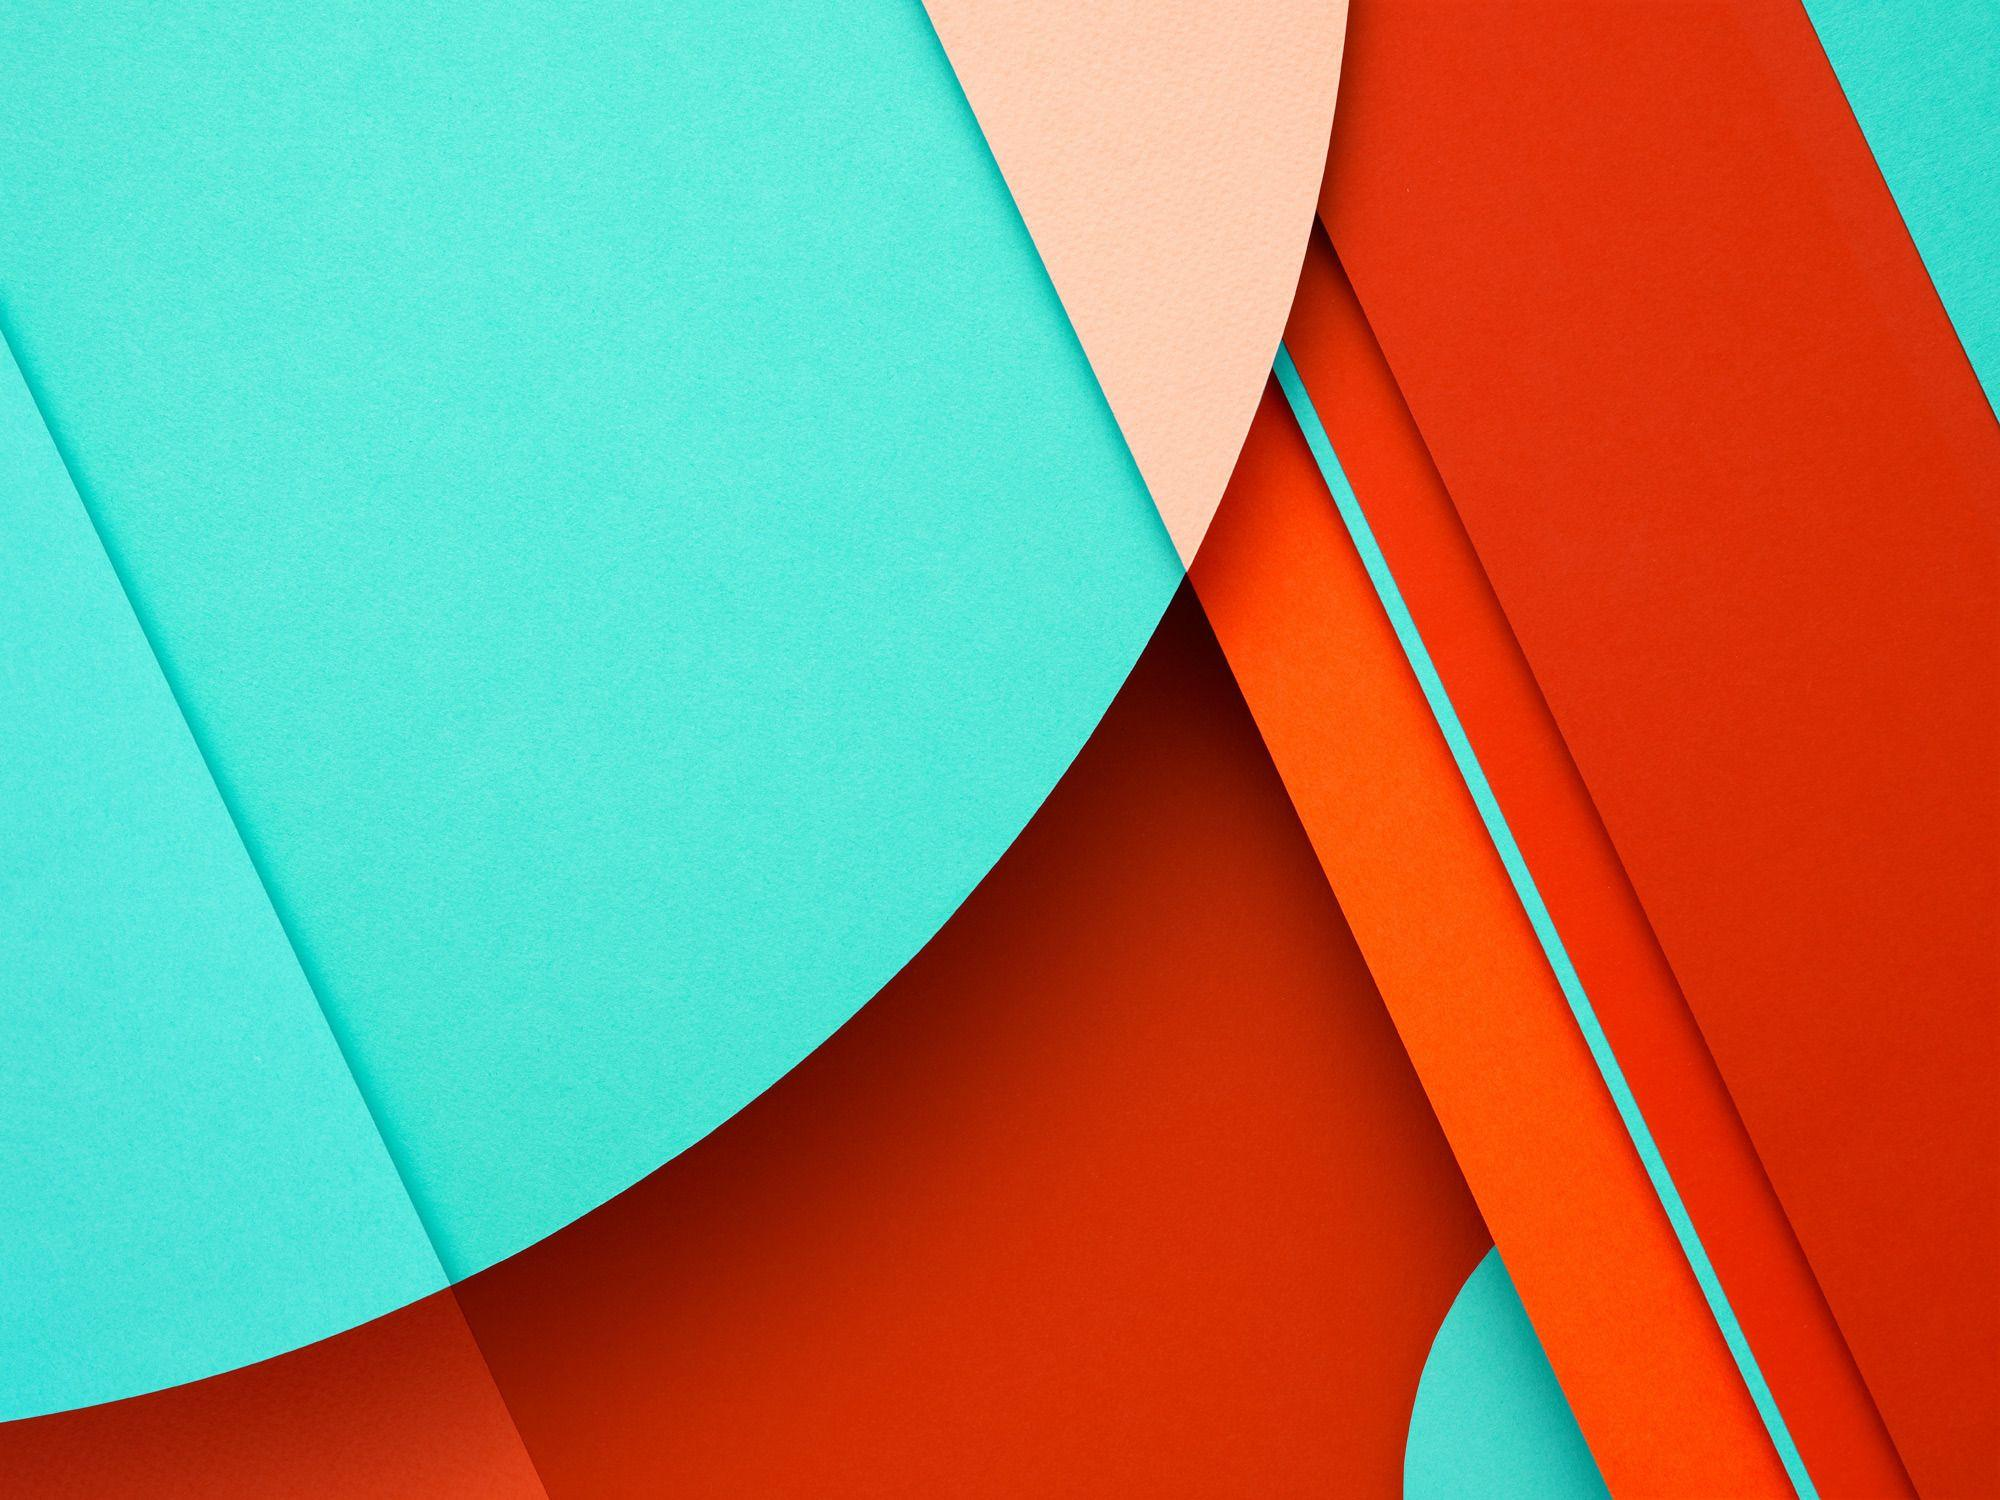 Andriod L Material Design Wallpapers - Top Of Android